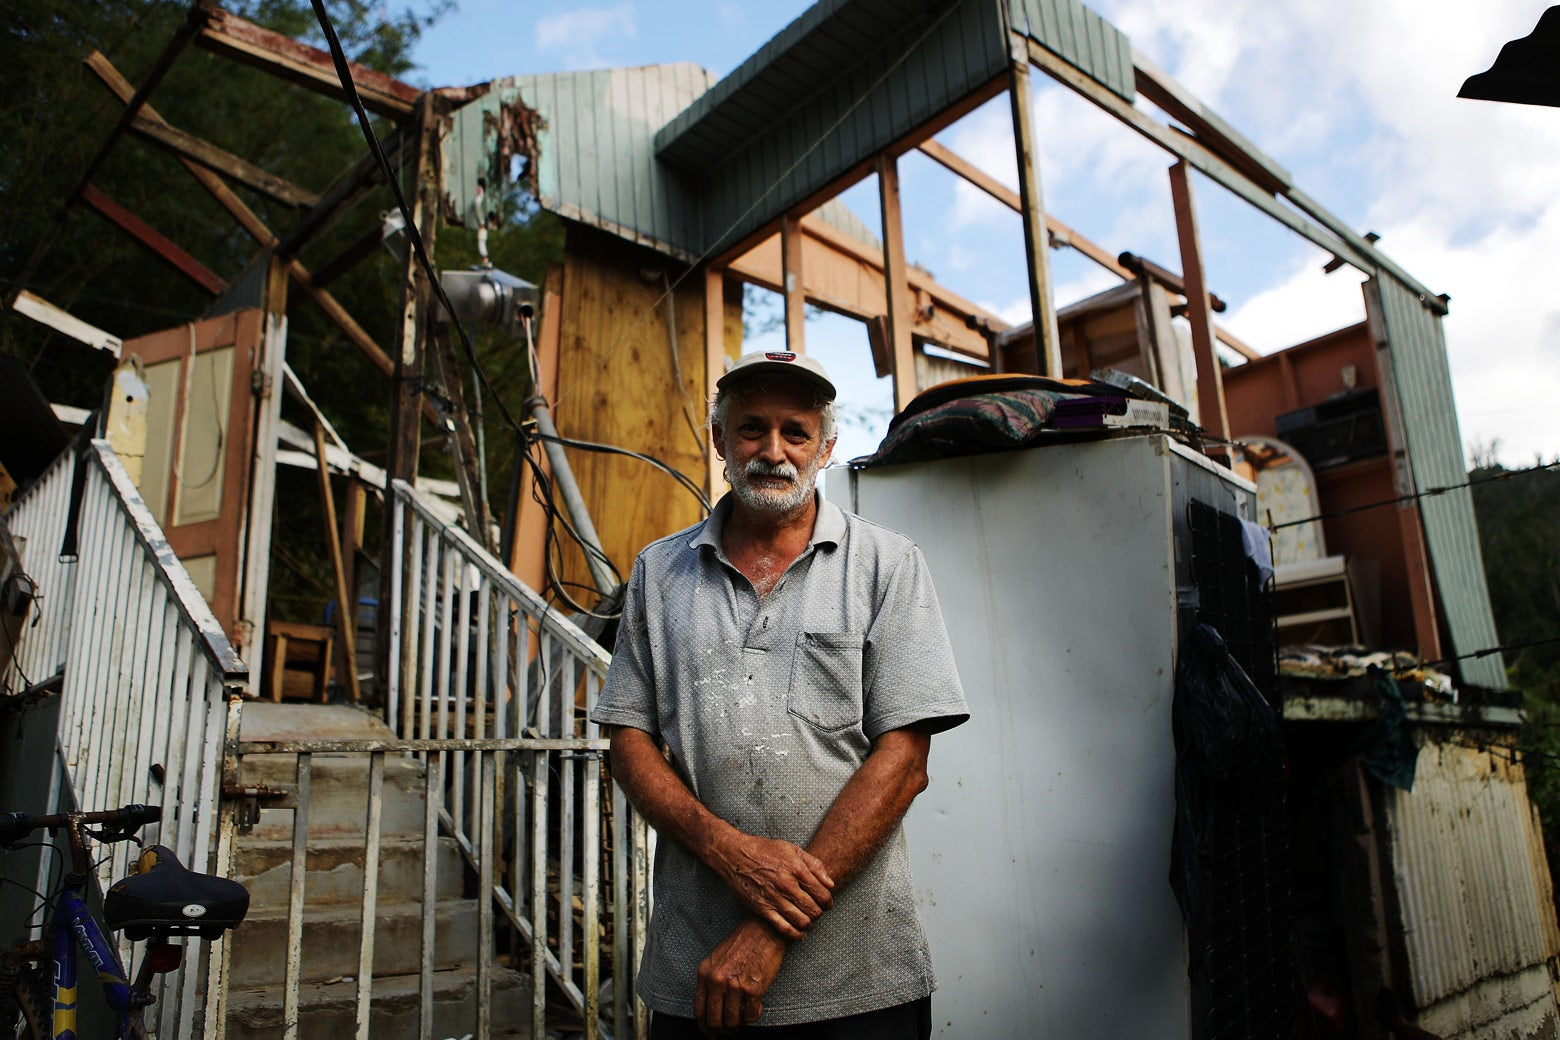 An older man stands in front of his destroyed home.